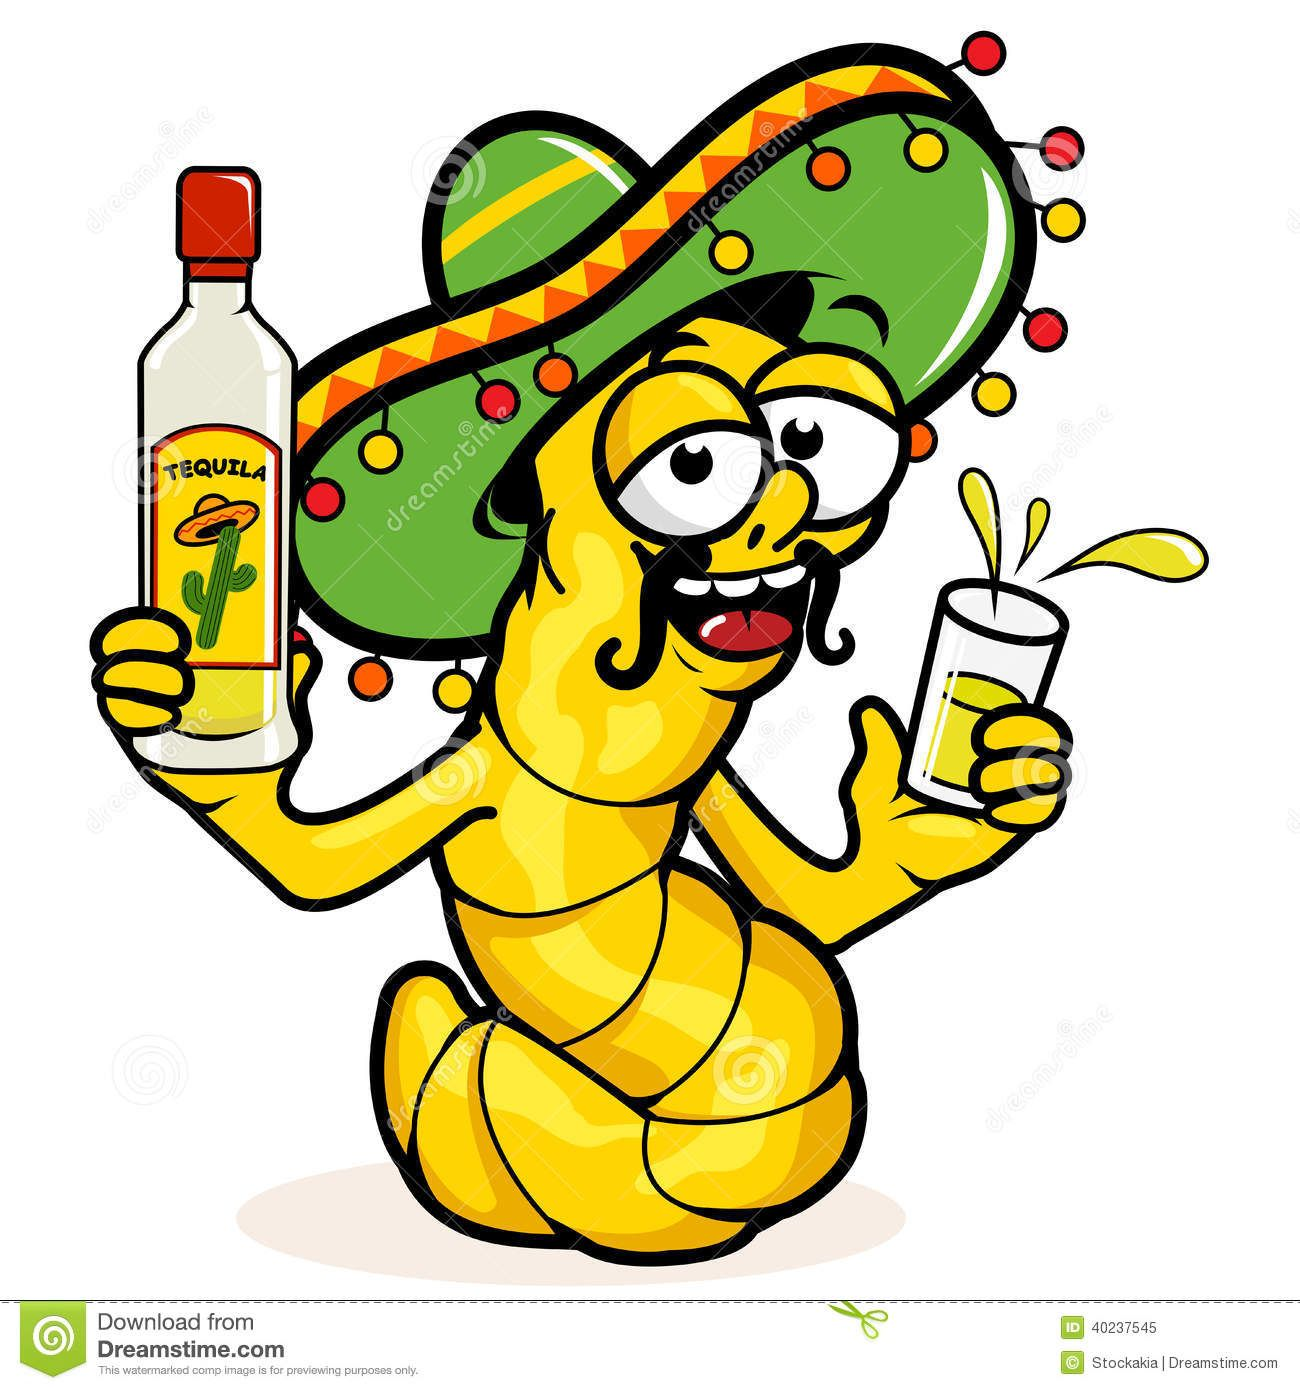 Worm turning around cartoon clipart image transparent Vector illustration of a drunk cartoon tequila worm holding ... image transparent